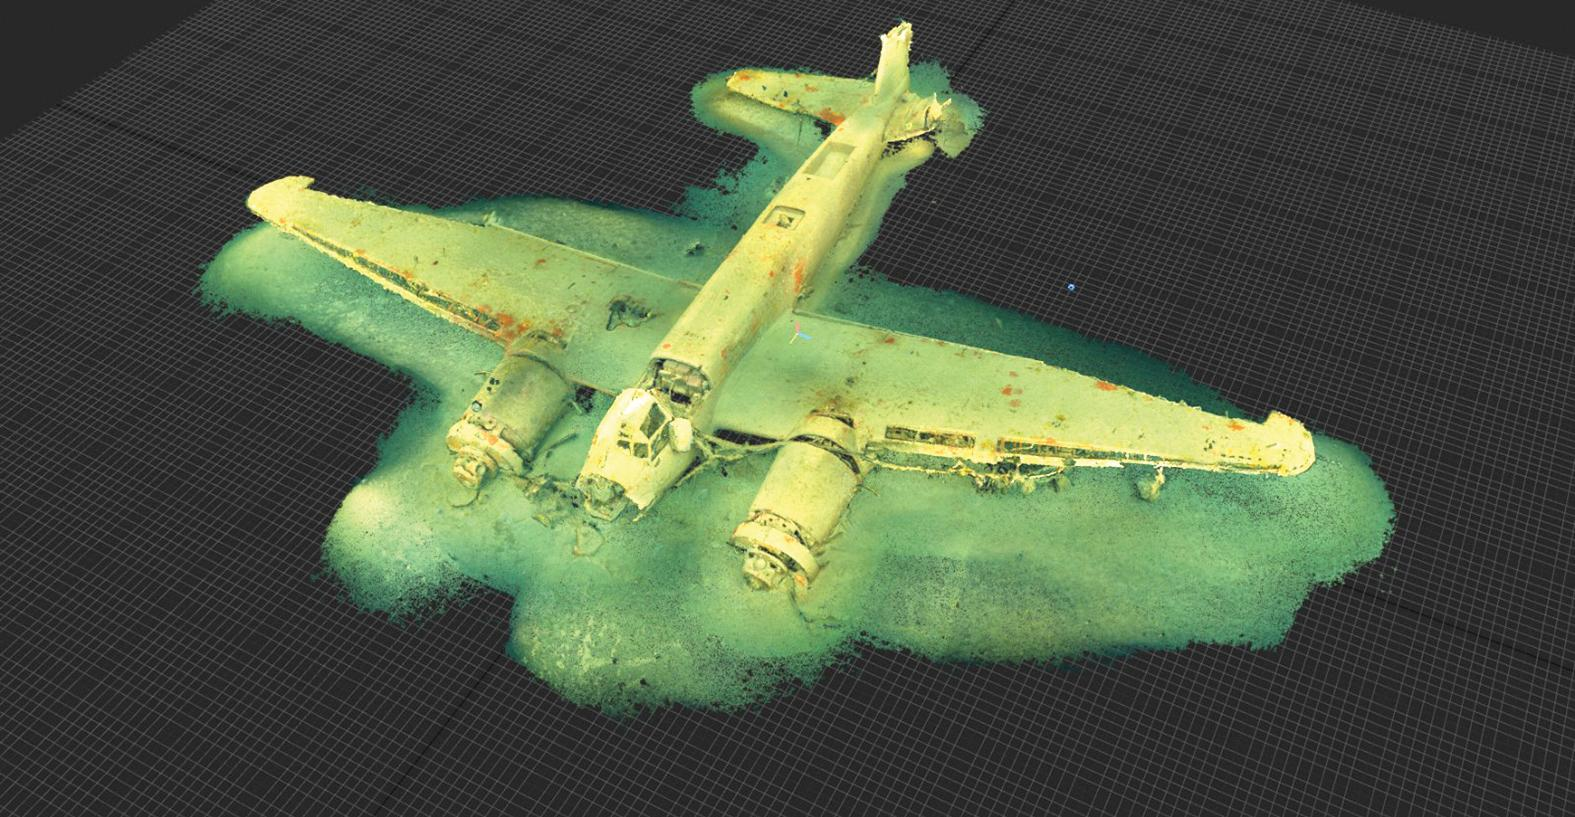 Due to the several air battles fought over Malta, the seabed is replete with aircraft remains.